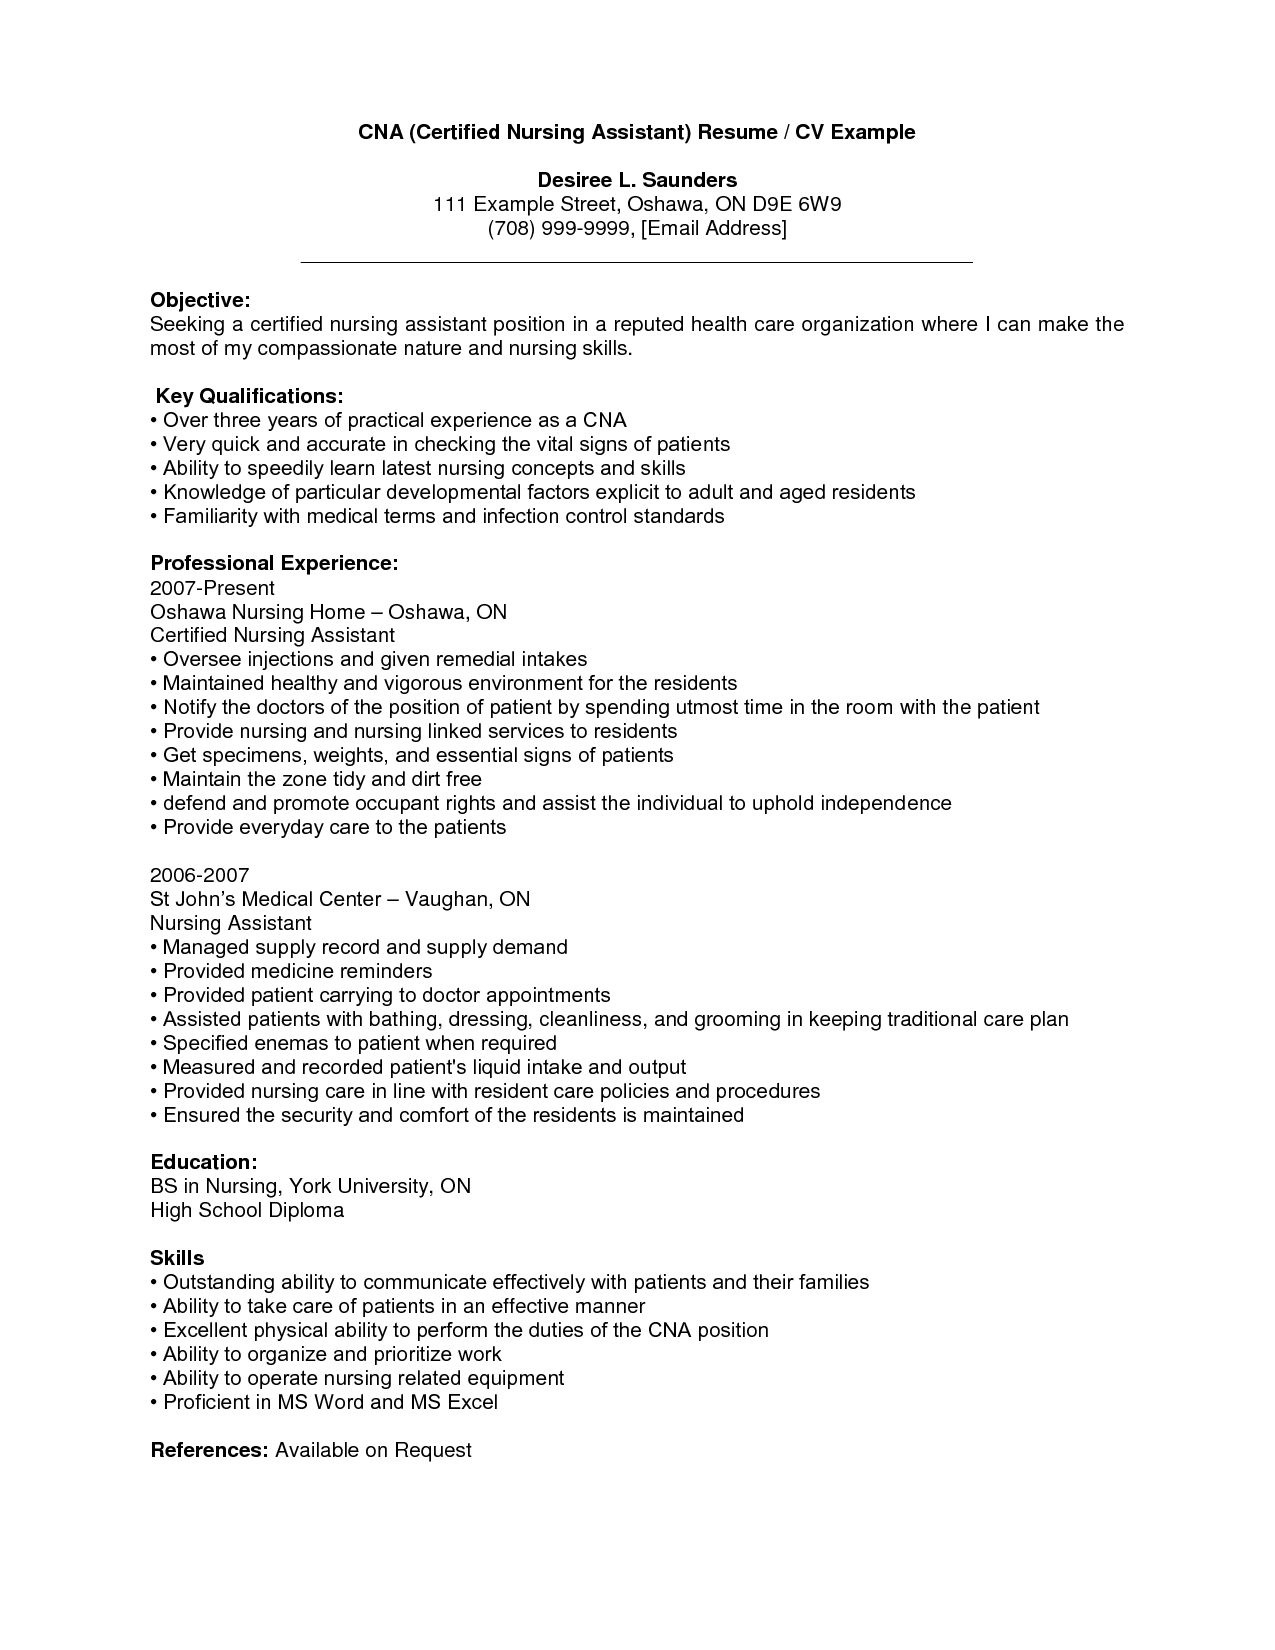 cna resumes with no experience Collection-Cna Resume No Experience Fresh Resume with No Experience Template Free for Download Cna Resume 14-e